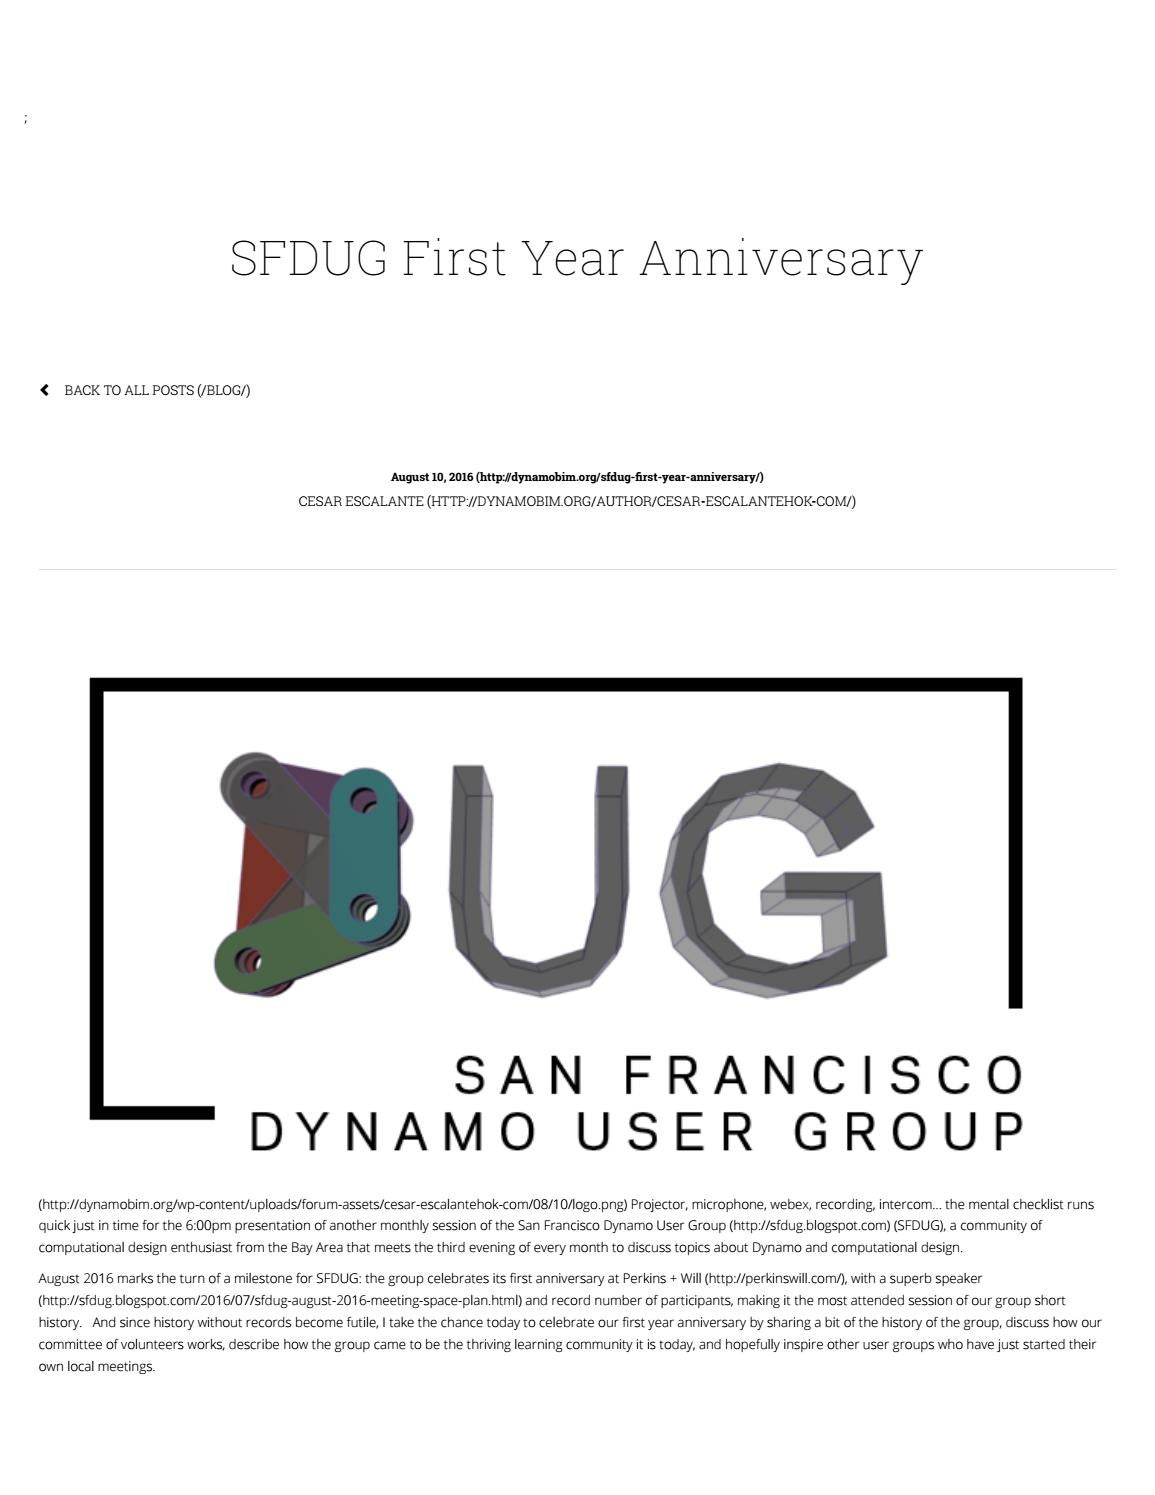 Sfdug first year anniversary dynamo bim by So Young Lee - issuu